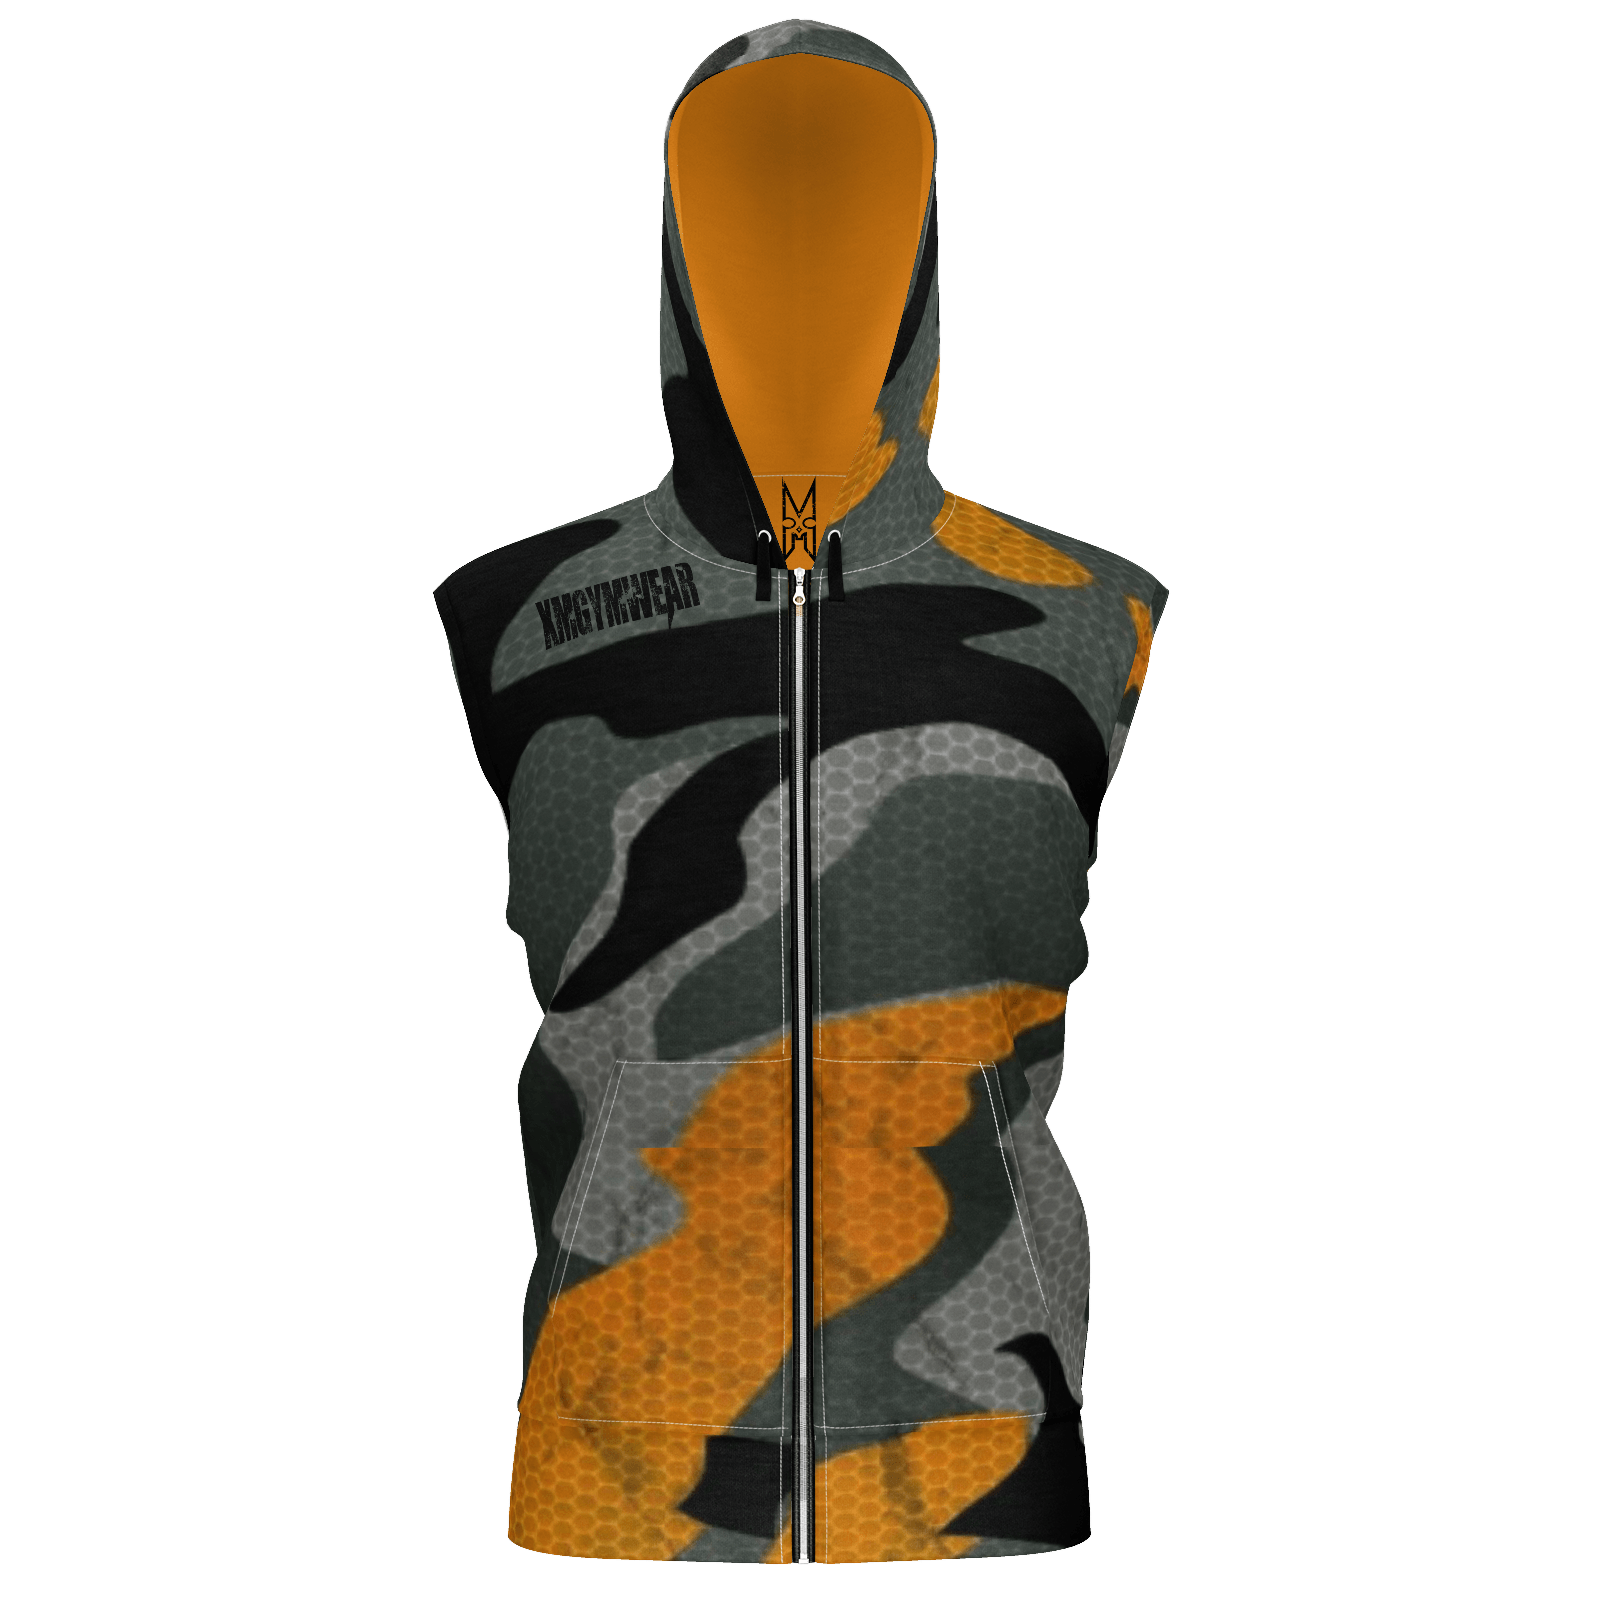 XMGYMWEAR AGENT ORANGE CAMO SLEEVELESS HOODIE